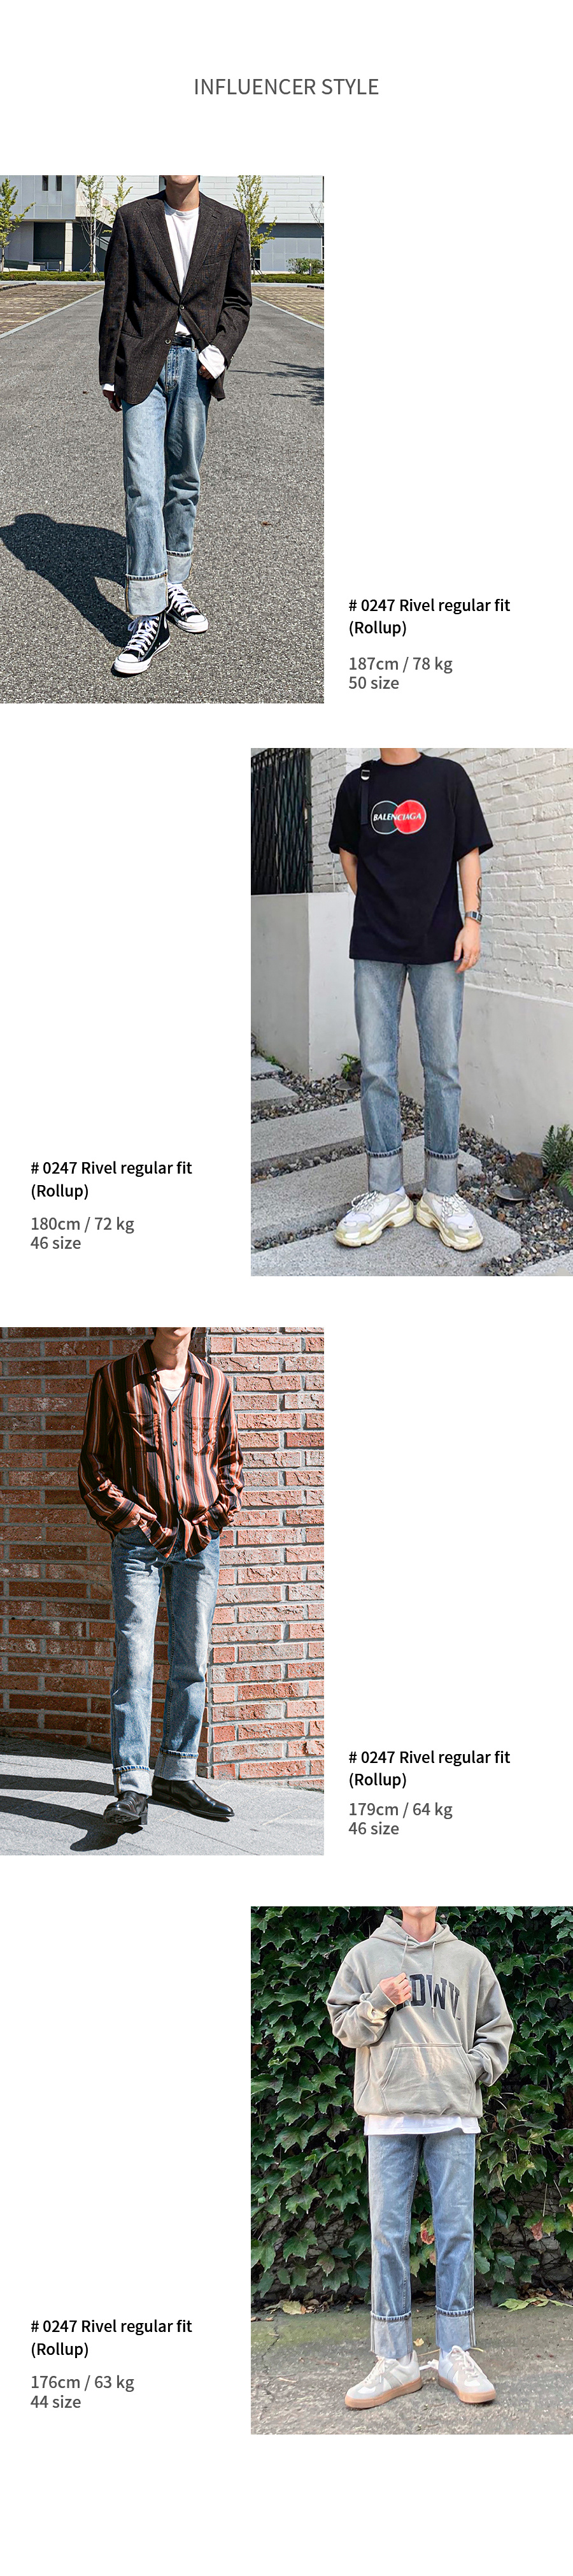 페이탈리즘(FATALISM) #0247 Rivel regular fit (Rollup)